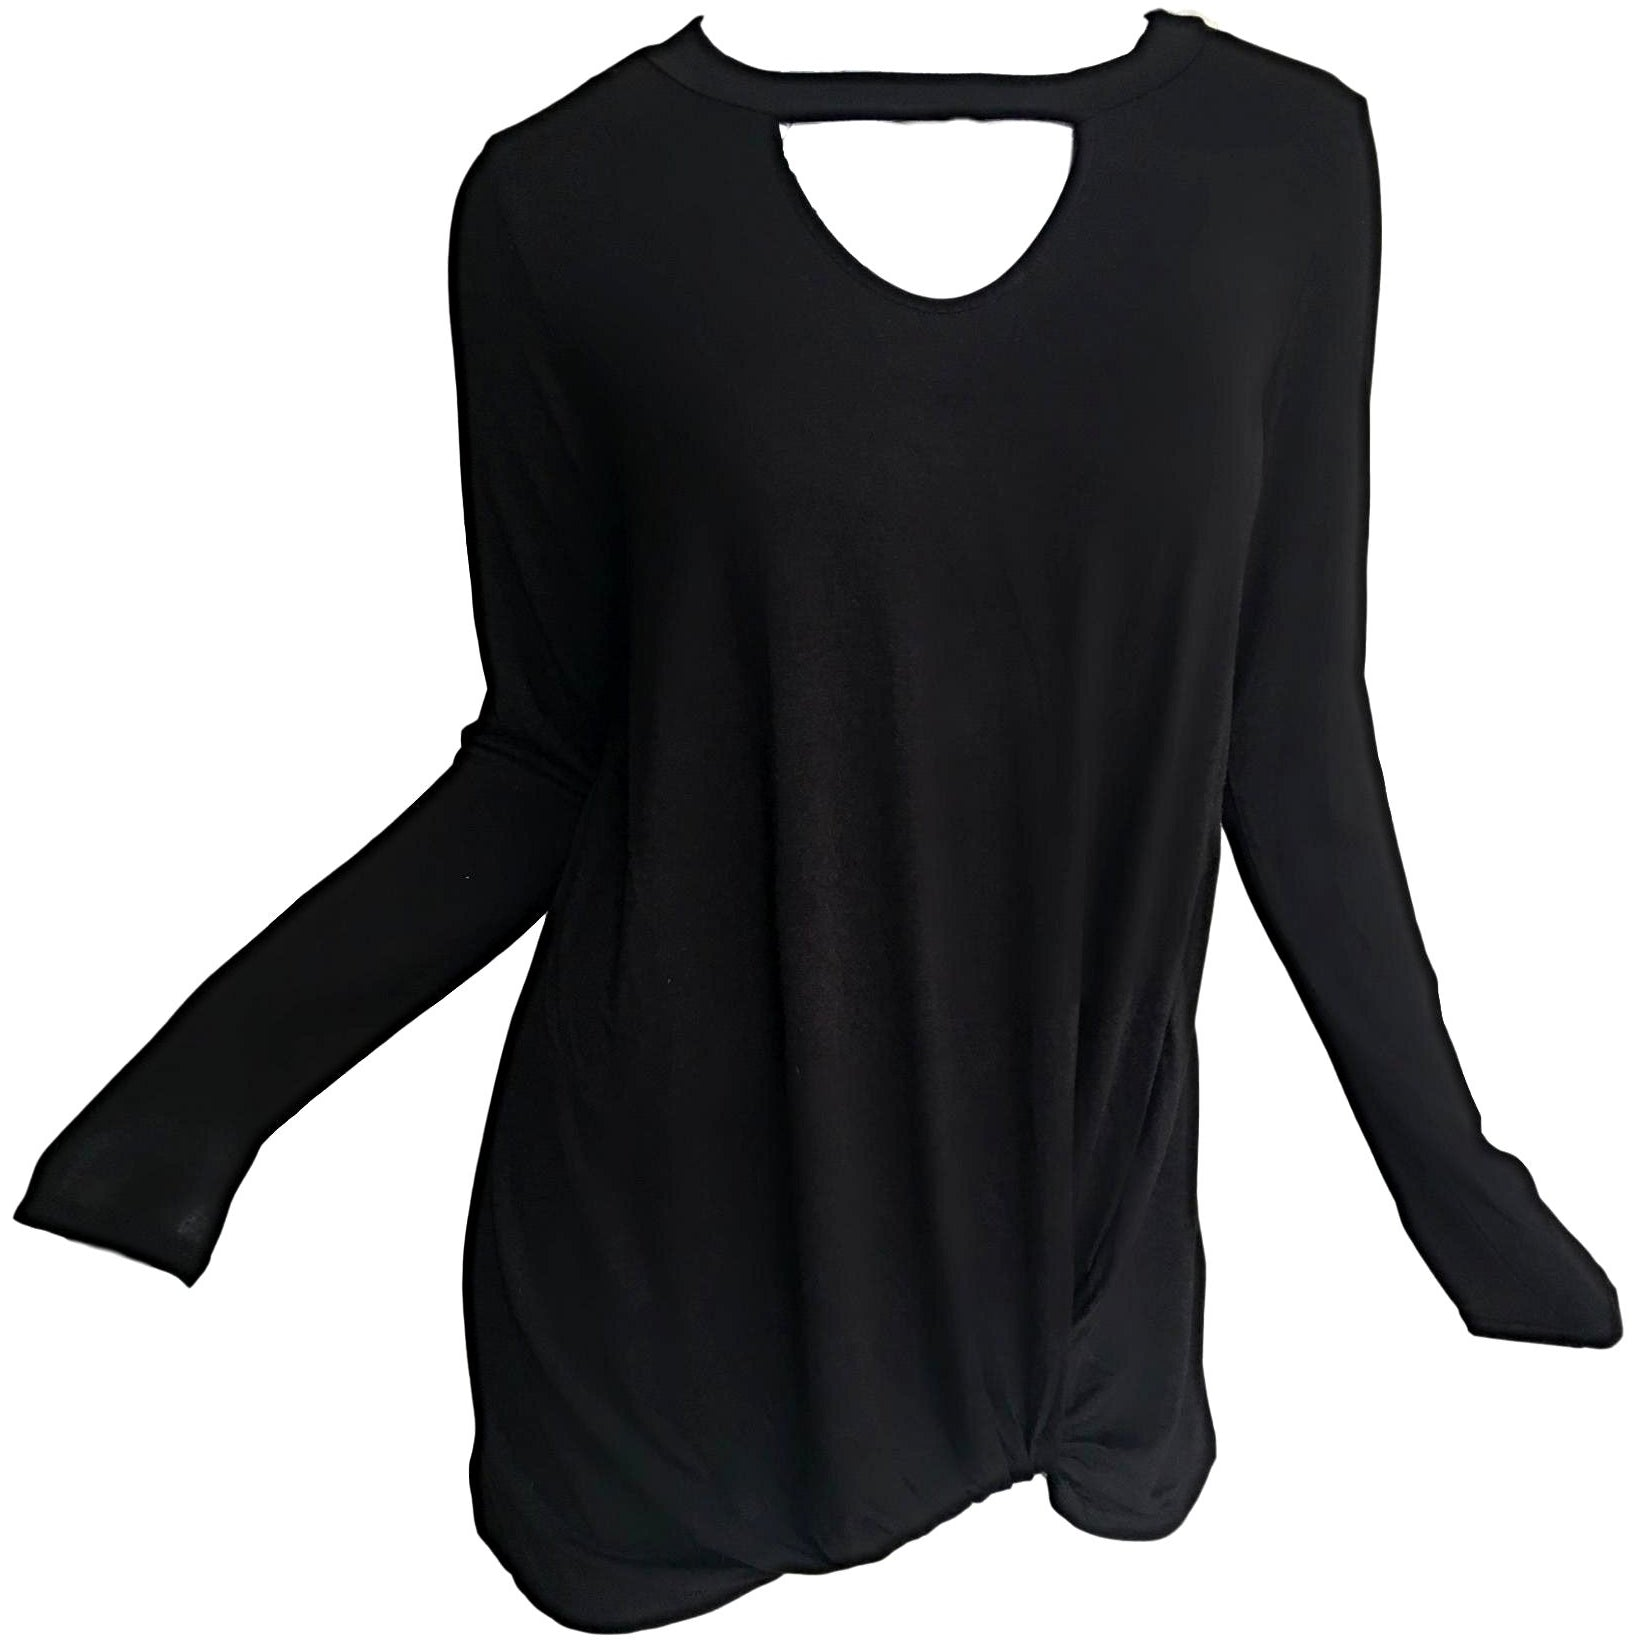 Lisa-Key-Hole-Knit-Top-Black